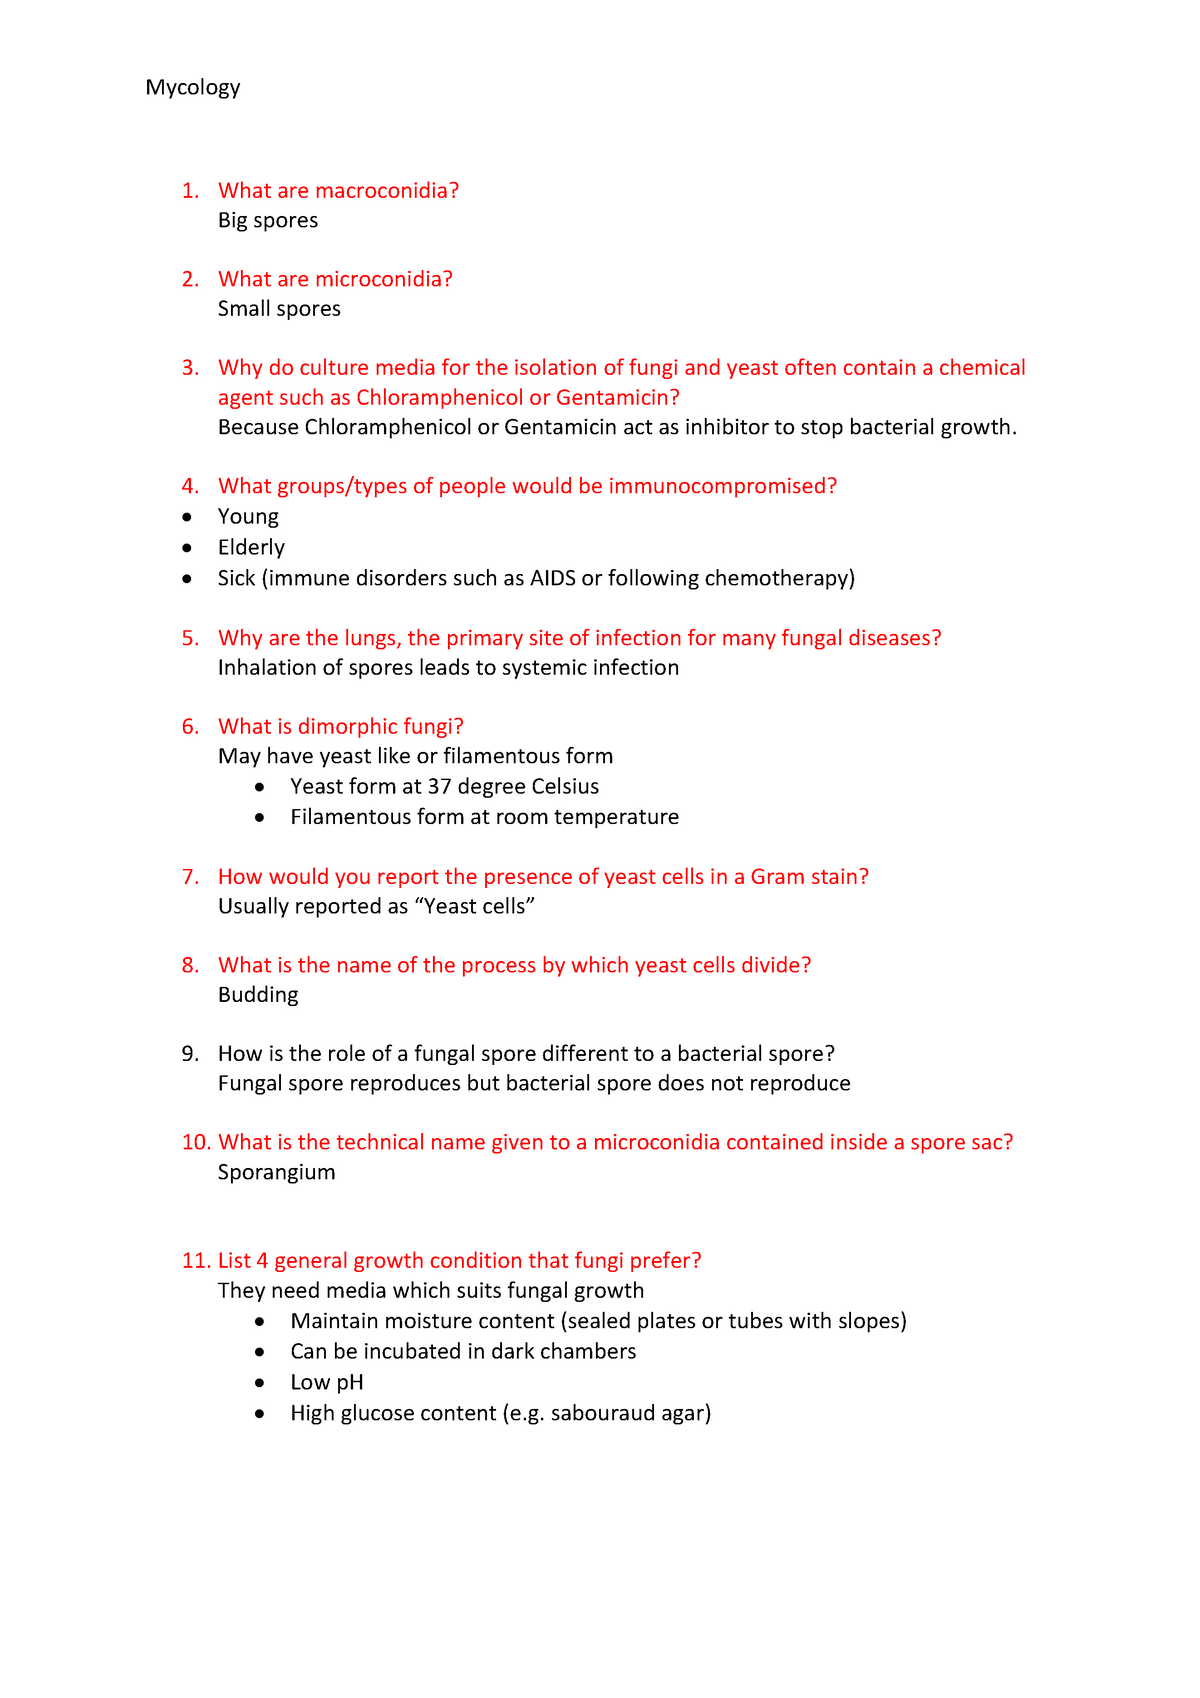 Mycology short questions and answer - MEDI2003 - Curtin